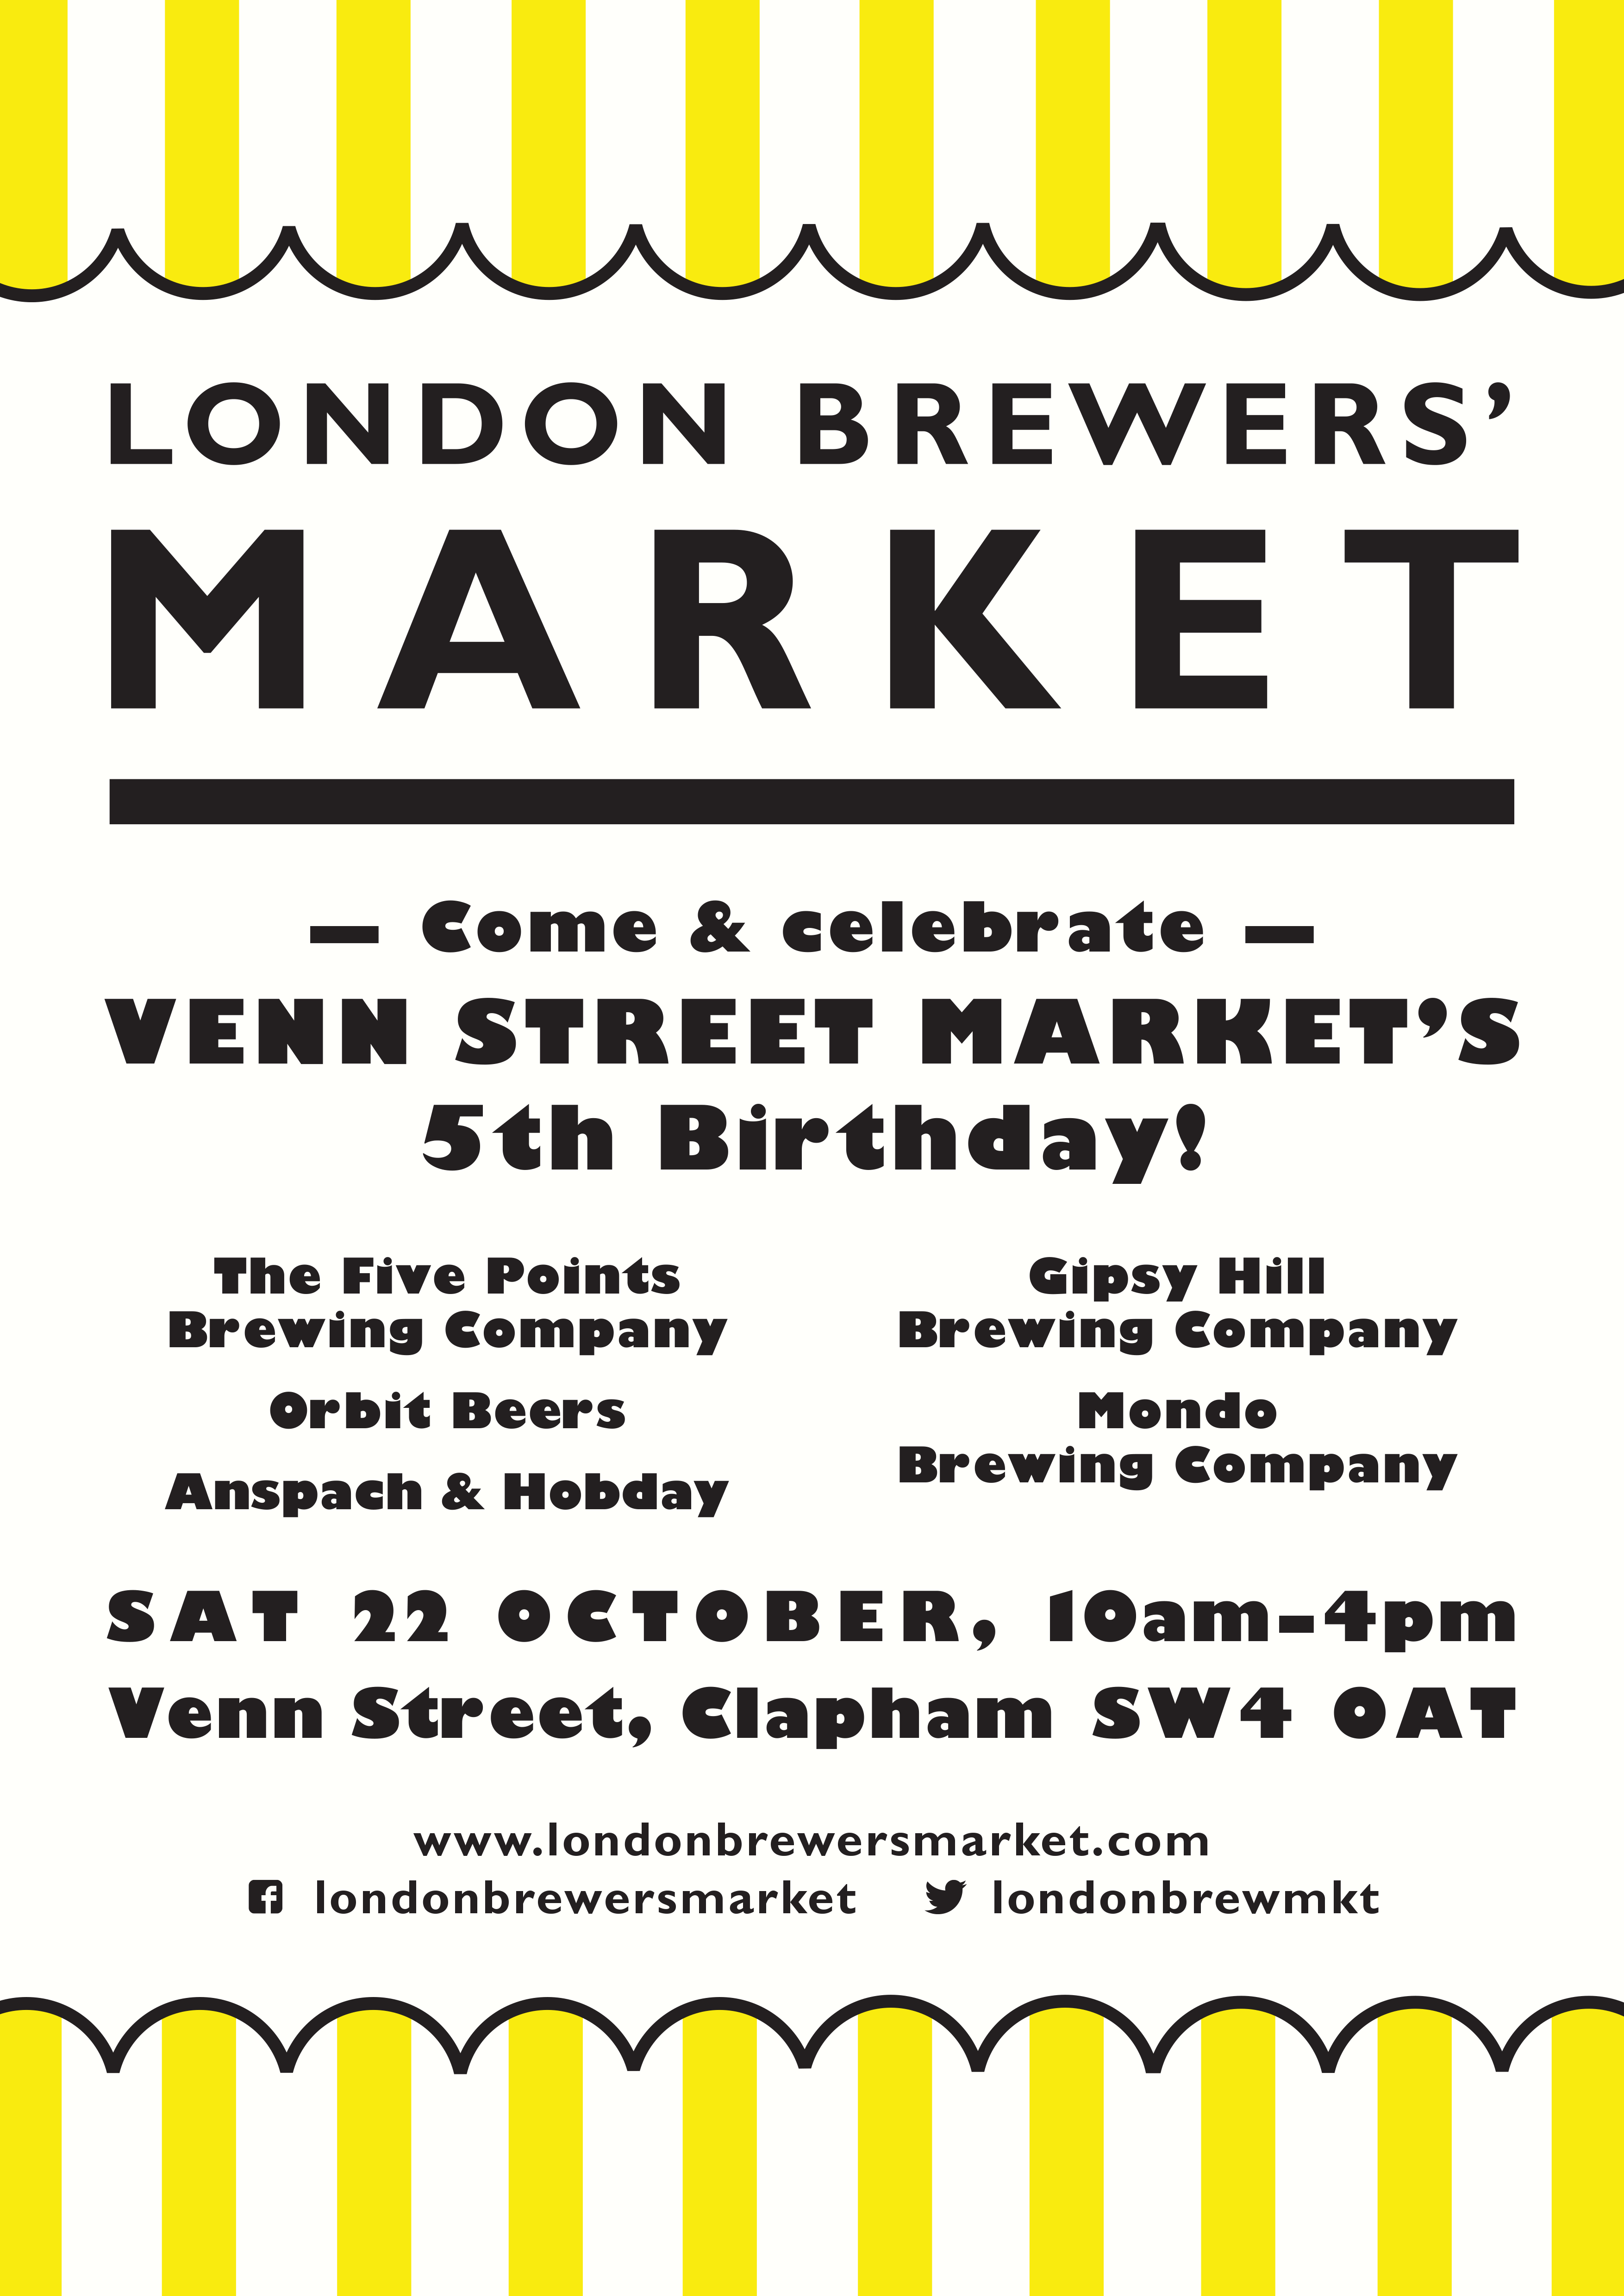 London Brewers' Market at Venn Street Market